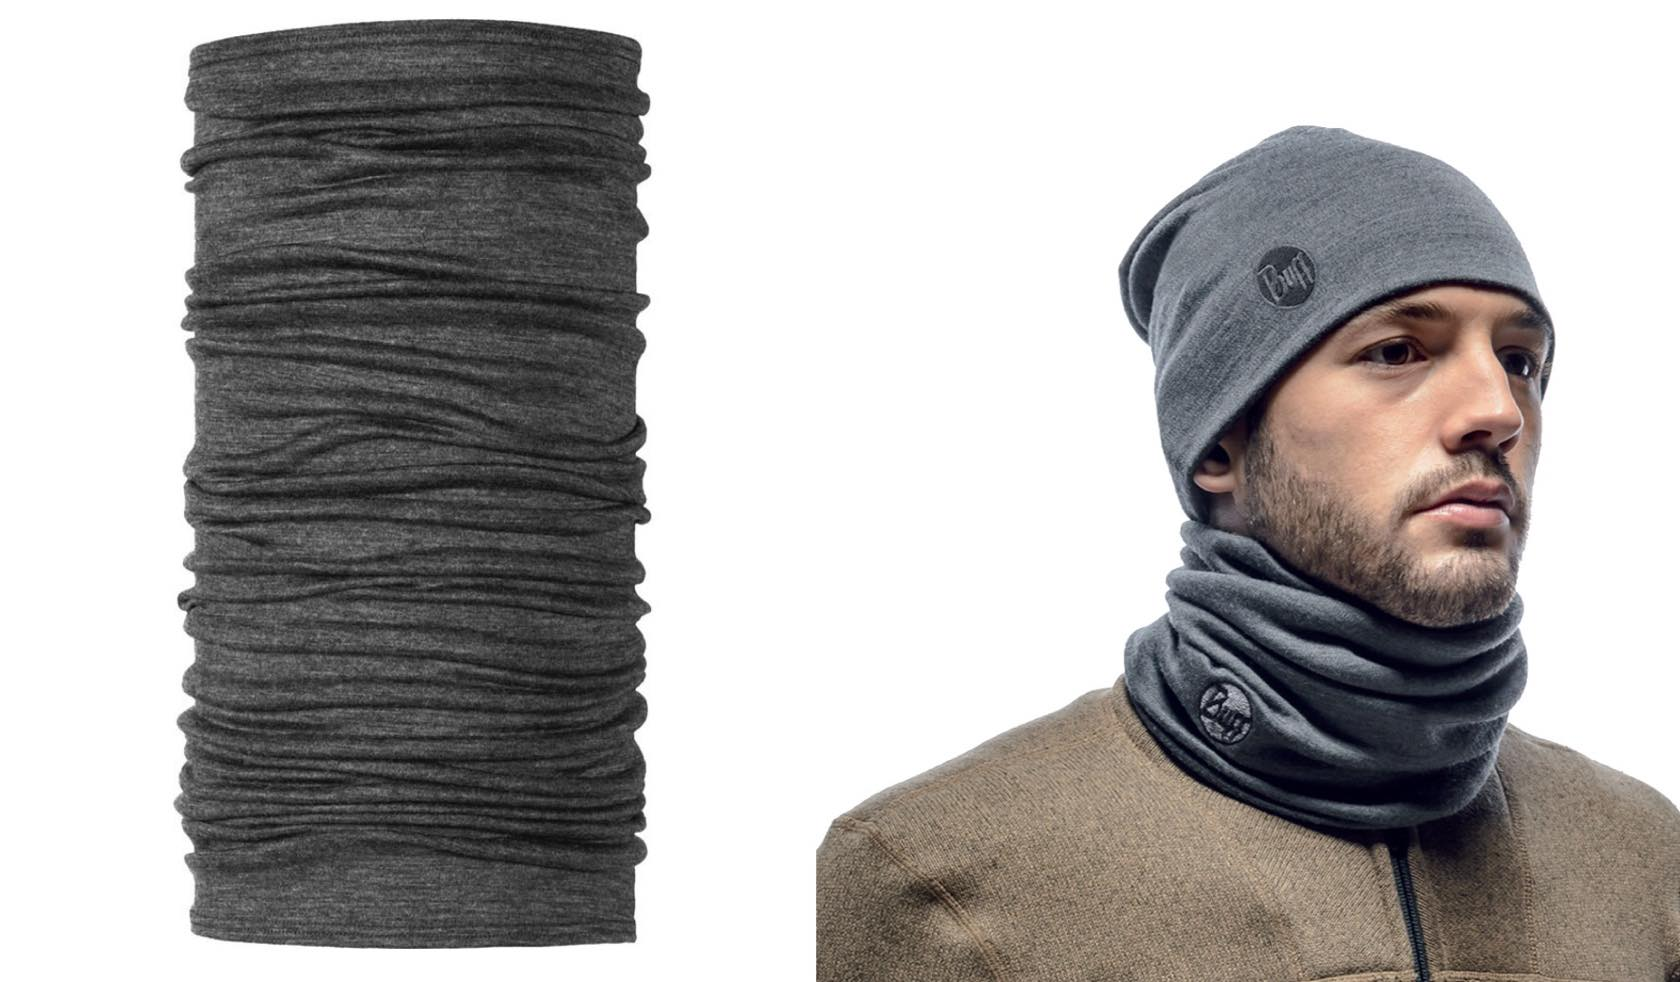 The Buff merino wool headwear. ($24–$58, depending on color)